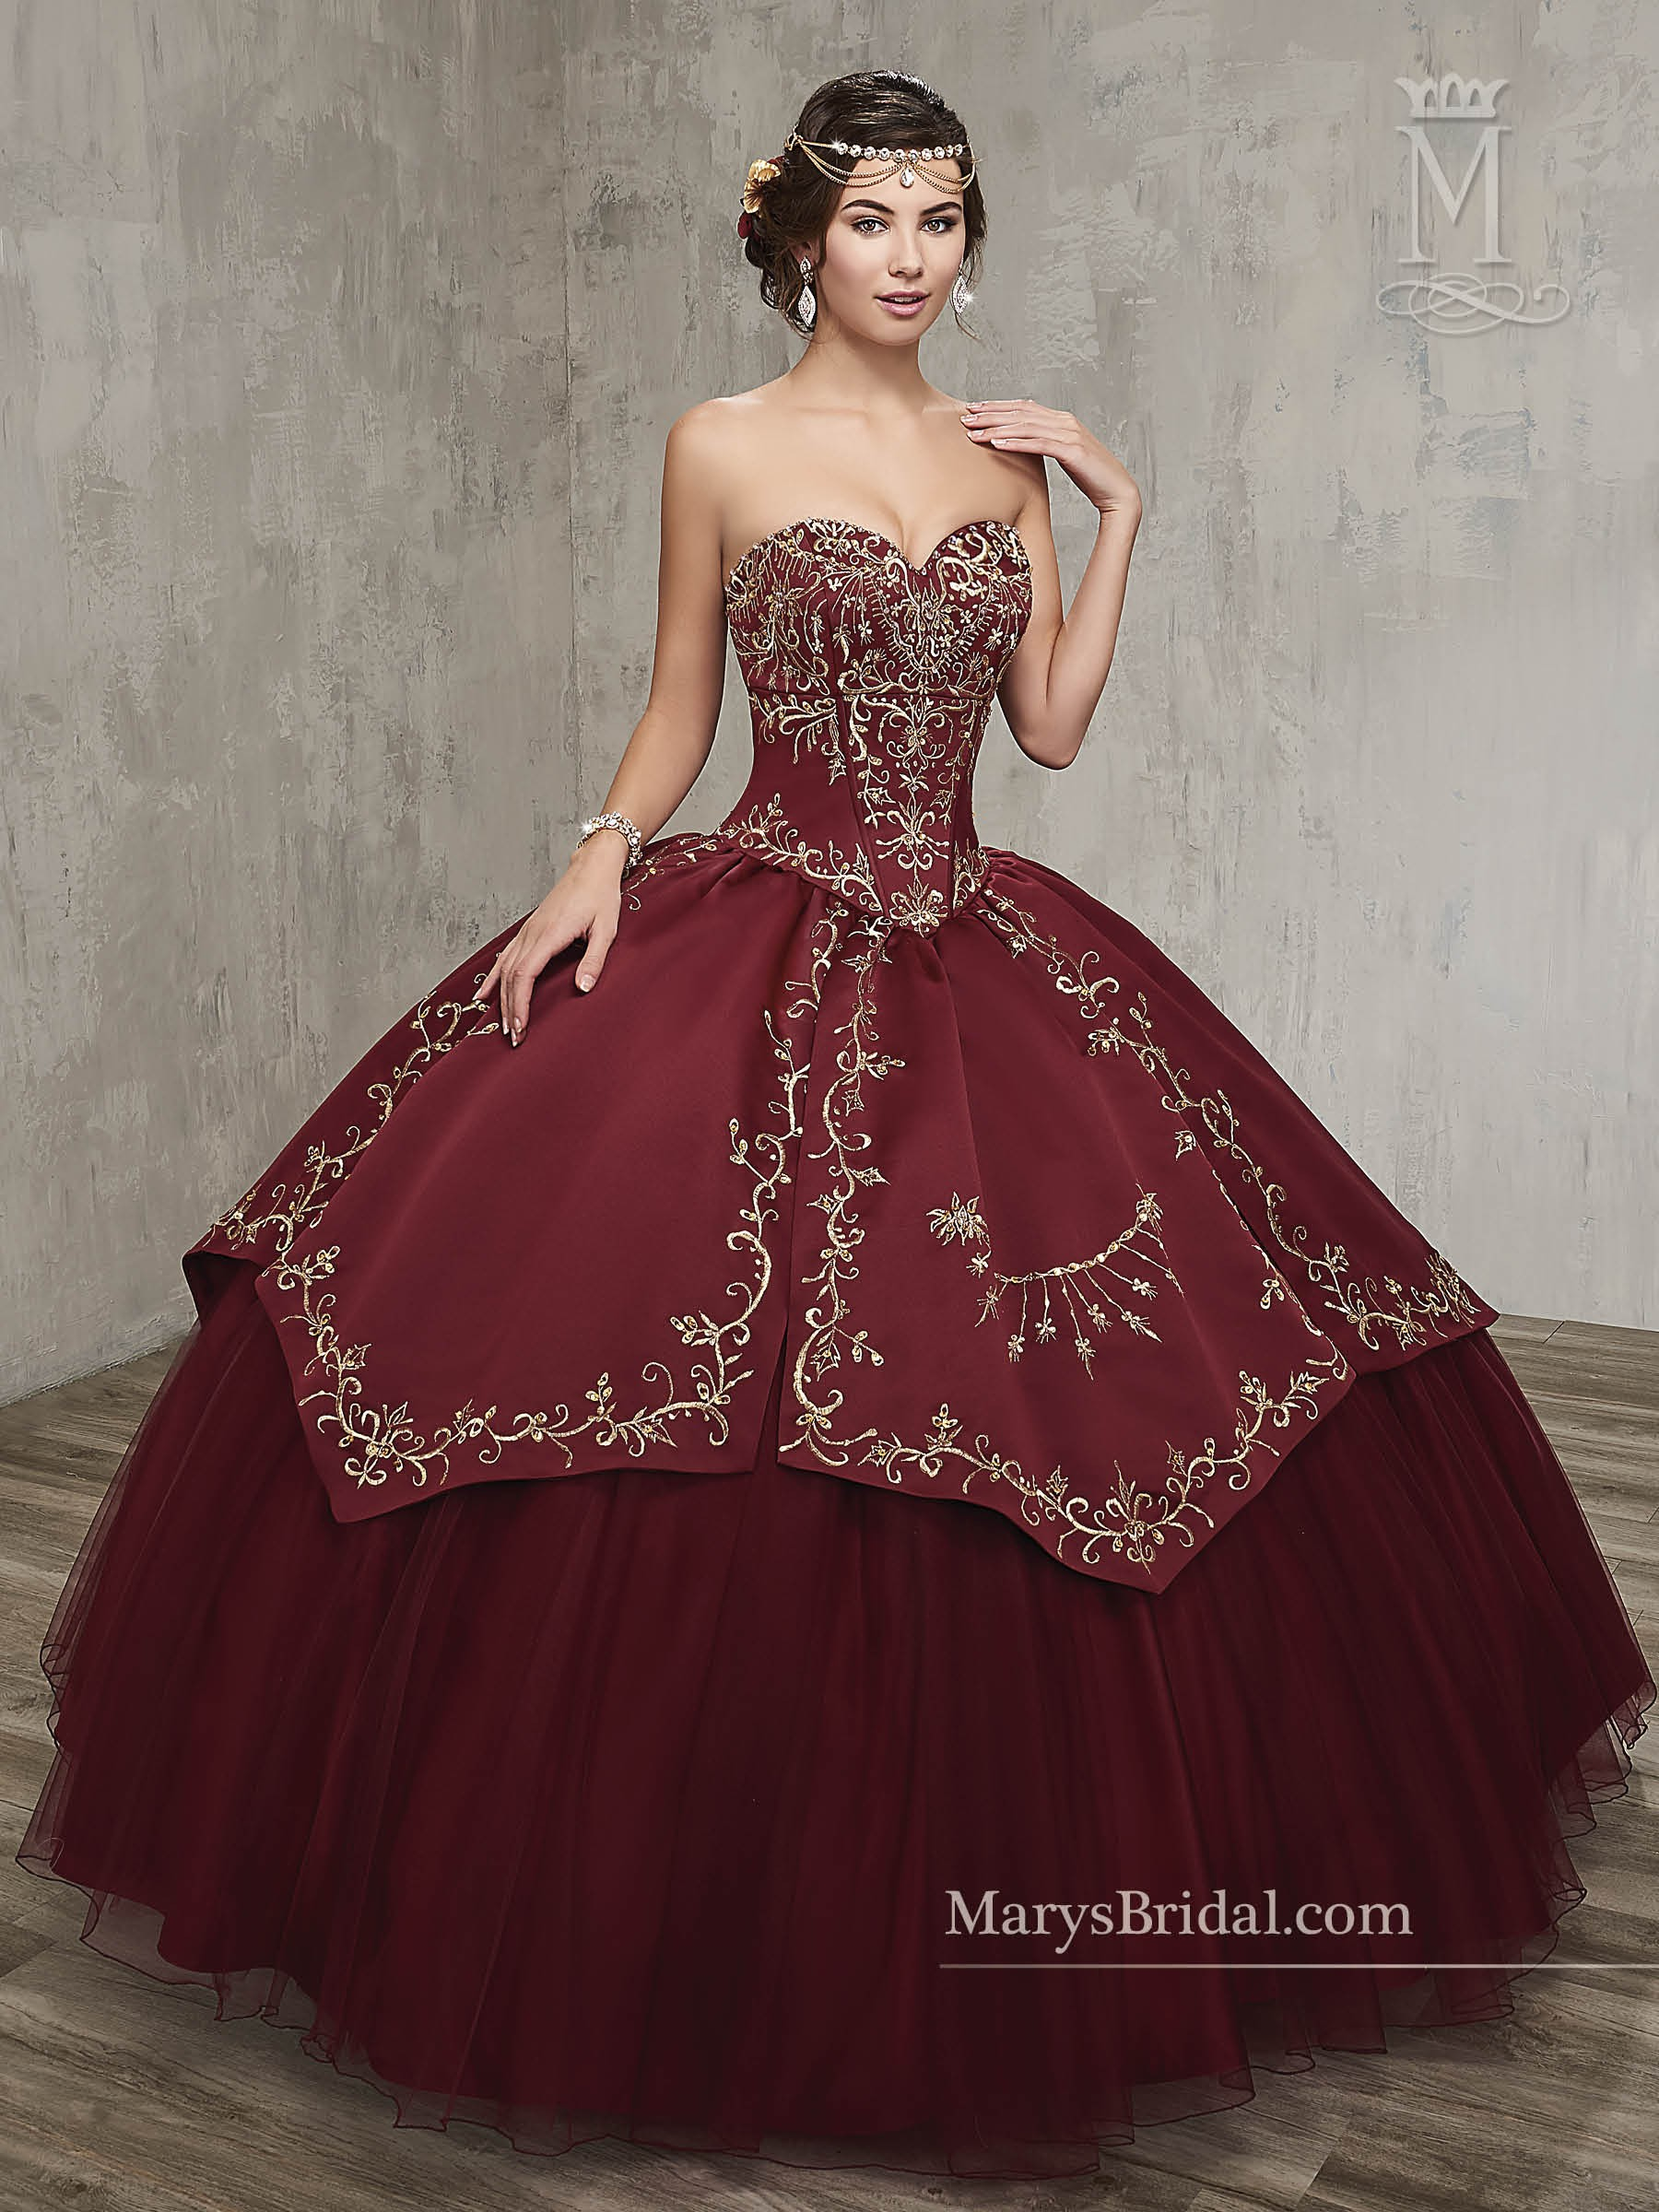 0a12db2771 Quinceanera Dresses Charro Style For Sale - Gomes Weine AG